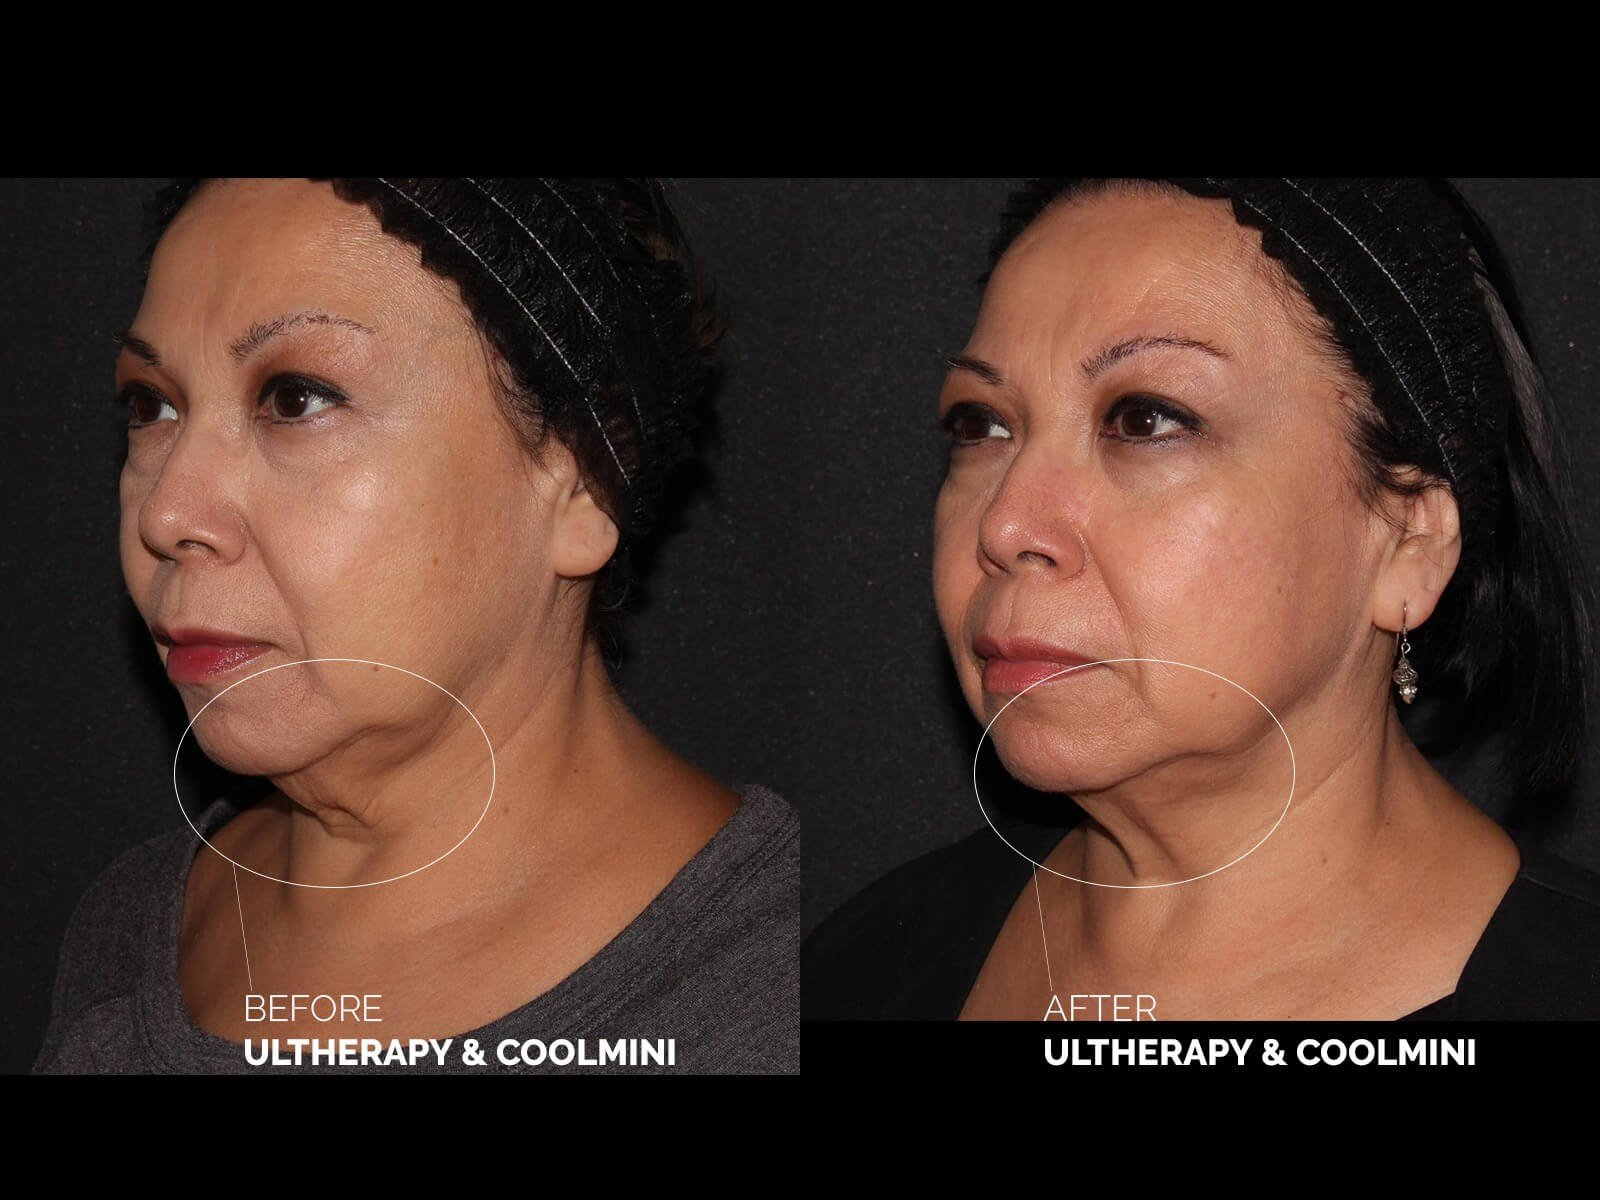 ultherapy-coolmini-before-after